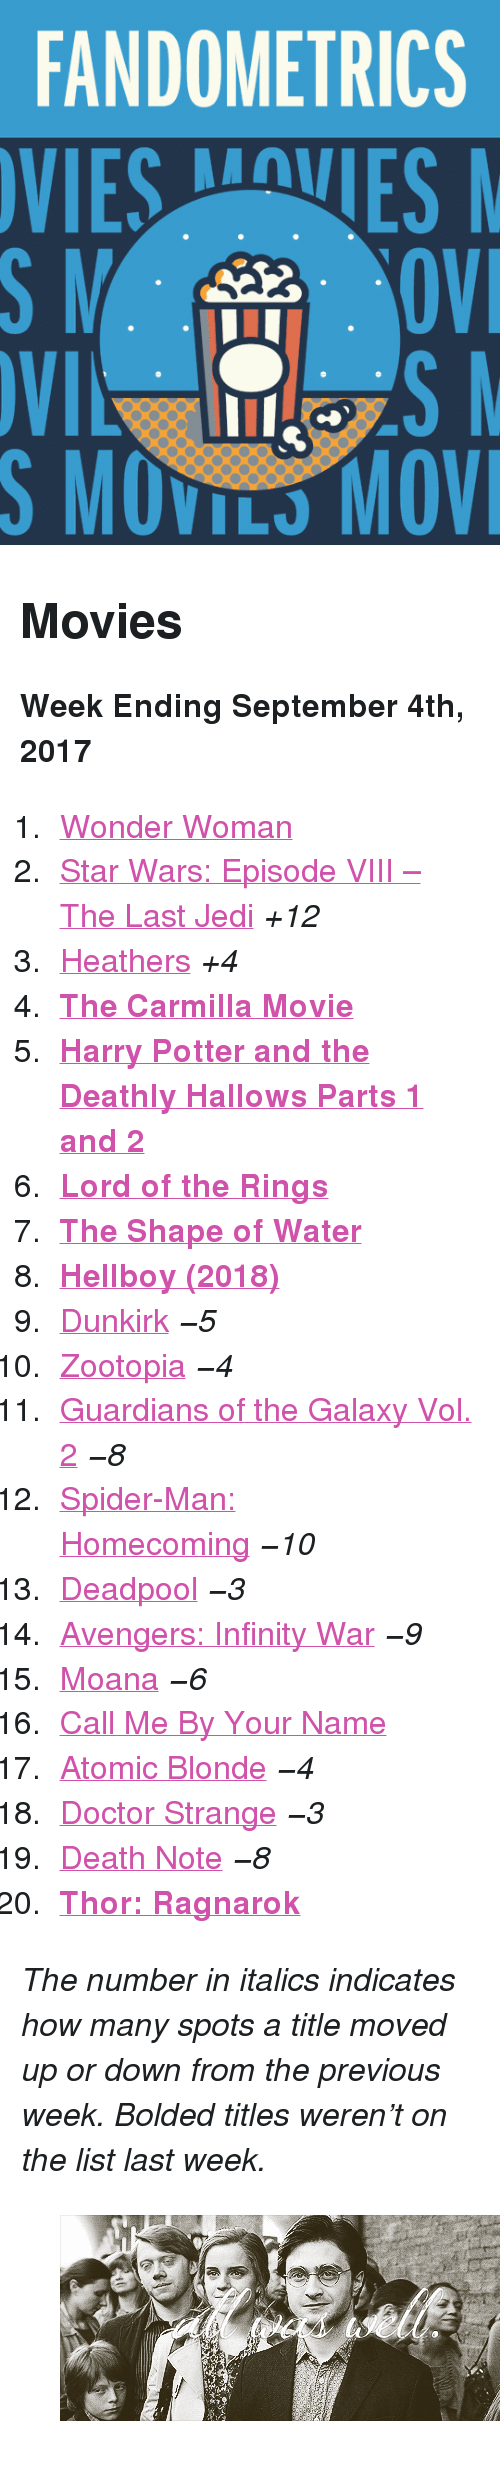 """spider-man-homecoming: FANDOMETRICS  VIESVES  S MOVILS MOV <h2>Movies</h2><p><b>Week Ending September 4th, 2017</b></p><ol><li><a href=""""http://tumblr.co/61328Lc6q"""">Wonder Woman</a></li><li><a href=""""http://tumblr.co/61358Lc6t"""">Star Wars: Episode VIII – The Last Jedi</a><i>+12</i></li><li><a href=""""http://tumblr.co/61388Lc6a"""">Heathers</a><i>+4</i></li><li><a href=""""http://tumblr.co/61308Lc6I""""><b>The Carmilla Movie</b></a></li><li><a href=""""http://tumblr.co/61338Lc6F""""><b>Harry Potter and the Deathly Hallows Parts 1 and 2</b></a></li><li><a href=""""http://tumblr.co/61368Lc64""""><b>Lord of the Rings</b></a></li><li><a href=""""http://tumblr.co/61378Lc6f""""><b>The Shape of Water</b></a></li><li><a href=""""http://tumblr.co/61308Lc6C""""><b>Hellboy (2018)</b></a></li><li><a href=""""http://tumblr.co/61348LcB8"""">Dunkirk</a><i><i>−5</i></i></li><li><a href=""""http://tumblr.co/61368LcBE"""">Zootopia</a><i><i>−4</i></i></li><li><a href=""""http://tumblr.co/61388LcBG"""">Guardians of the Galaxy Vol. 2</a><i><i>−8</i></i></li><li><a href=""""http://tumblr.co/61308LcBy"""">Spider-Man: Homecoming</a><i><i>−10</i></i></li><li><a href=""""http://tumblr.co/61328LcBK"""">Deadpool</a><i><i>−3</i></i></li><li><a href=""""http://tumblr.co/61348LcBM"""">Avengers: Infinity War</a><i><i>−9</i></i></li><li><a href=""""http://tumblr.co/61358LcB3"""">Moana</a><i><i>−6</i></i></li><li><a href=""""http://tumblr.co/61368LcBO"""">Call Me By Your Name</a></li><li><a href=""""http://tumblr.co/61318LcBT"""">Atomic Blonde</a><i><i>−4</i></i></li><li><a href=""""http://tumblr.co/61348LcBn"""">Doctor Strange</a><i><i>−3</i></i></li><li><a href=""""http://tumblr.co/61368LcBk"""">Death Note</a><i><i>−8</i></i></li><li><a href=""""http://tumblr.co/61388LcBw""""><b>Thor: Ragnarok</b></a></li></ol><p><i>The number in italics indicates how many spots a title moved up or down from the previous week. Bolded titles weren't on the list last week.</i></p><figure class=""""tmblr-full pinned-target"""" data-orig-height=""""524"""" data-orig-width=""""498"""" data-tumblr-attribution=""""hatersbehaters4ever:SO8i-sNd_4ZXq2AH"""